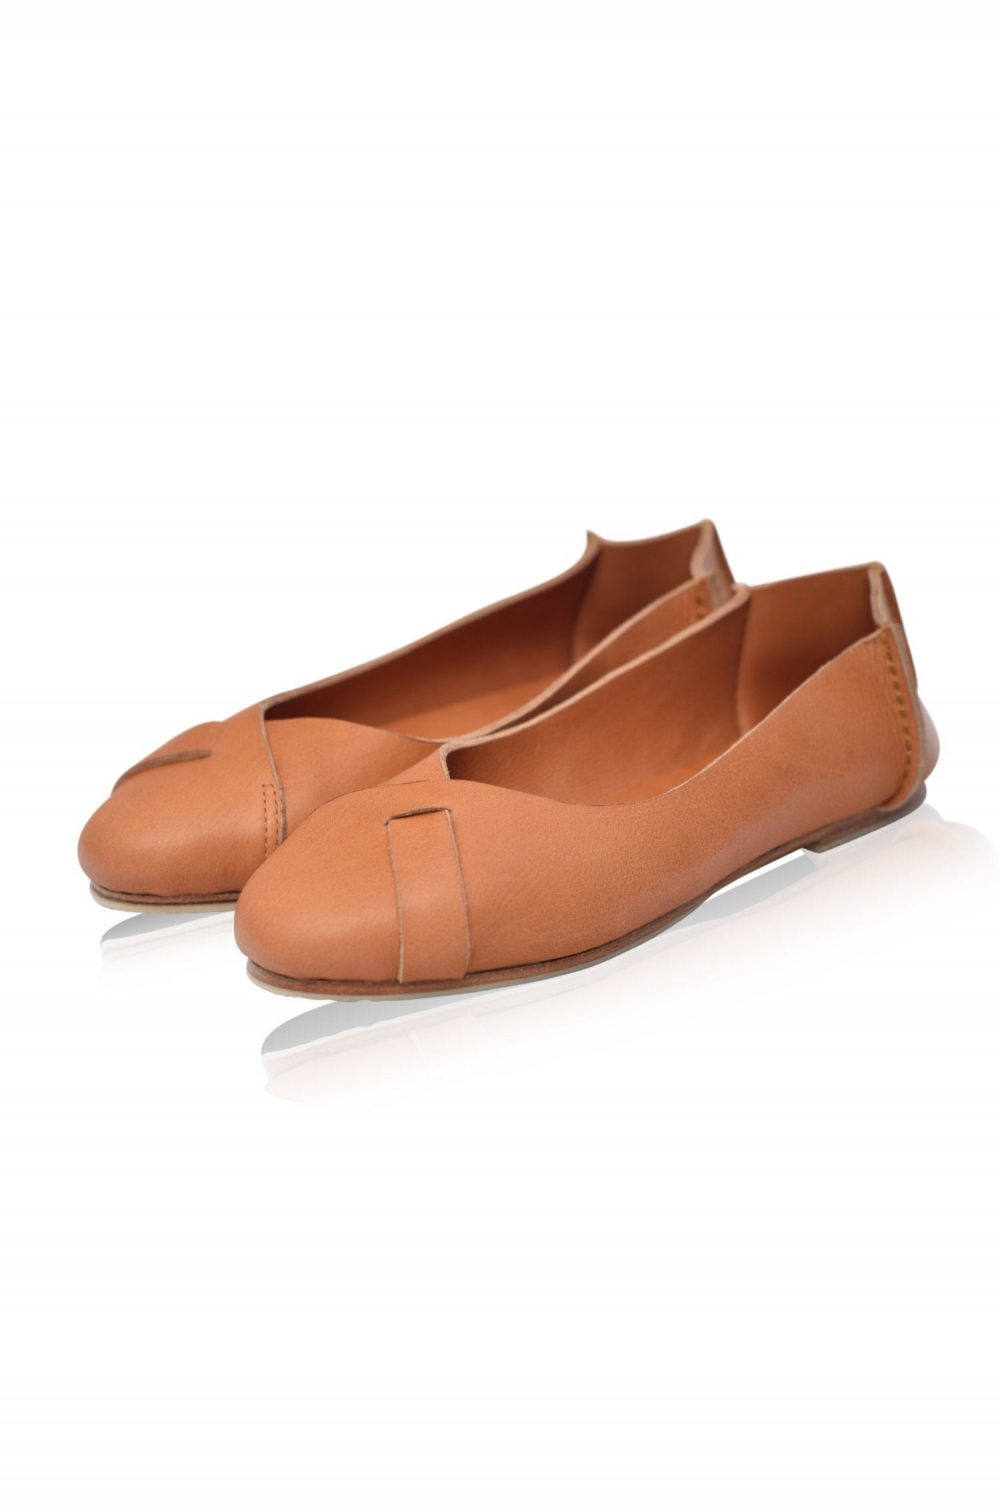 Native. Ballet Flats/Womens Leather Shoes Flat Ivory Wedding Shoes. Sizes Us 4-13. Available in Different Colors